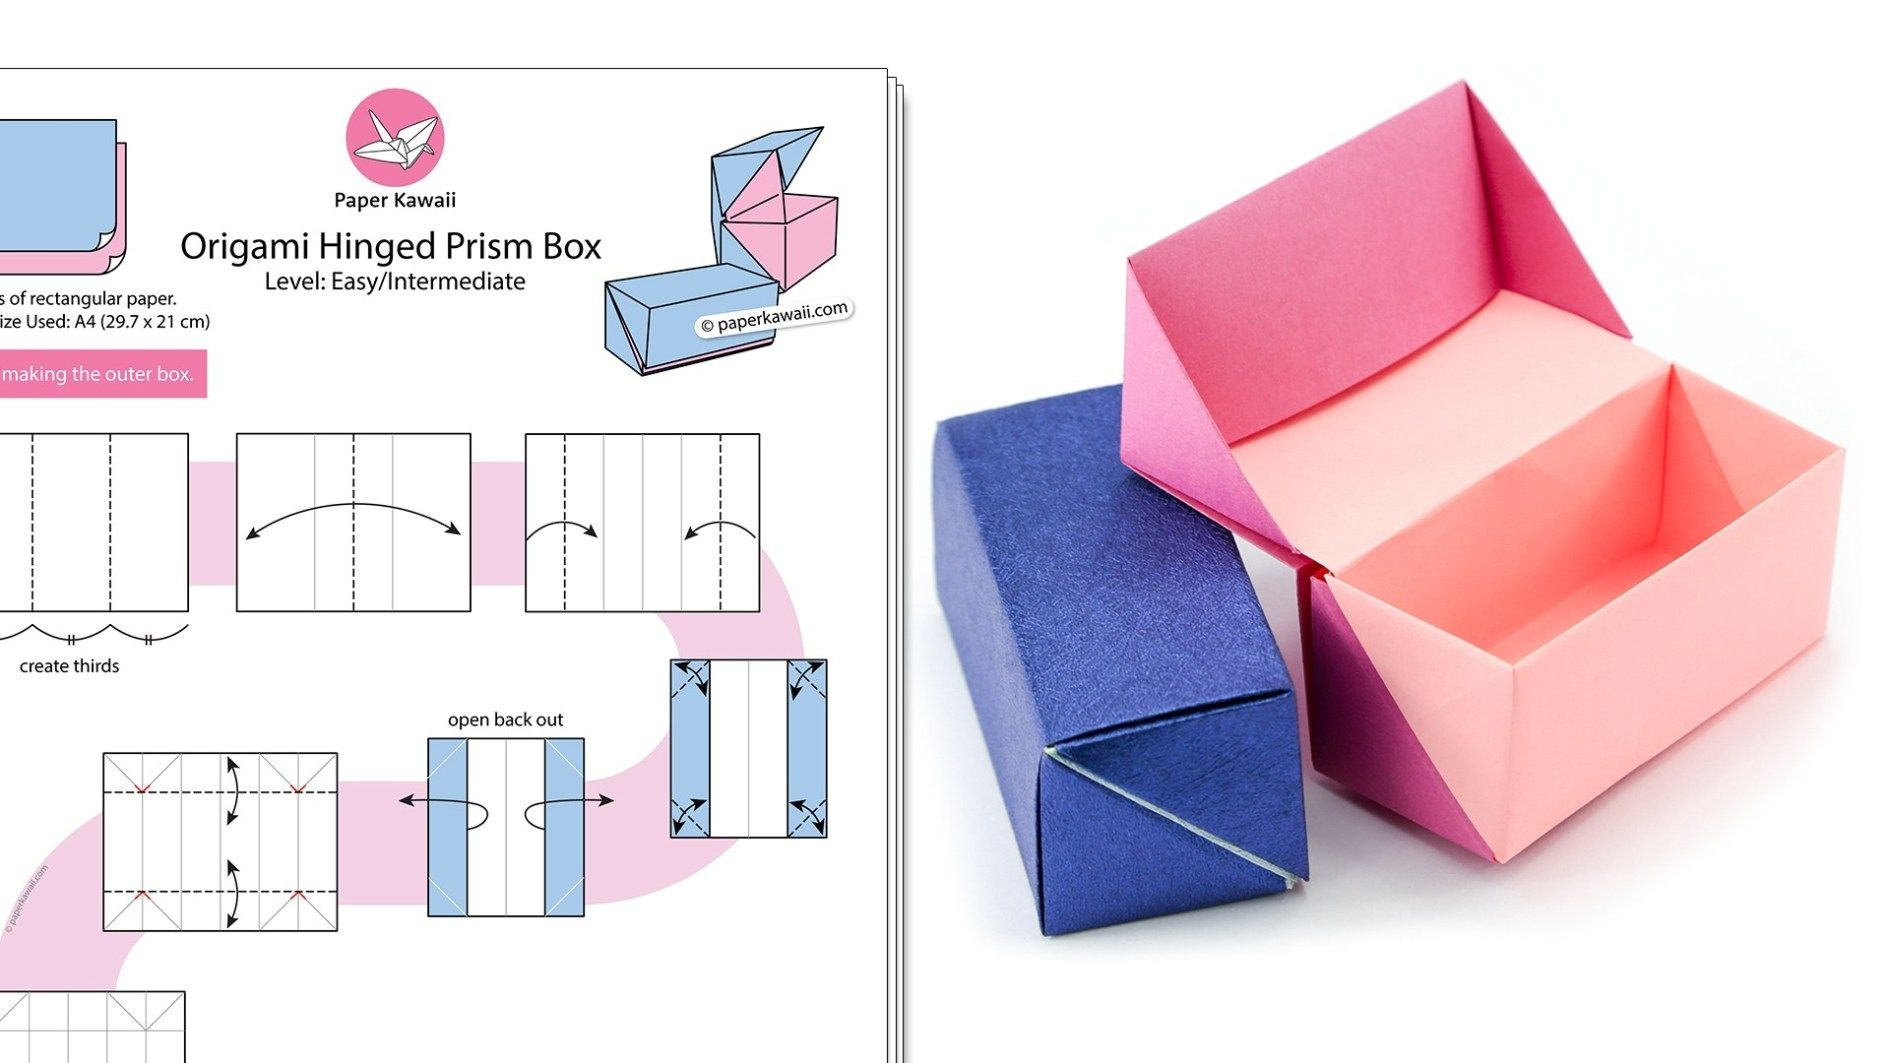 Origami Hinged Prism Gift Box Diagram Paper Kawaii Shop Origami Diagramme Modulares Origami Basteln Mit Papier Origami